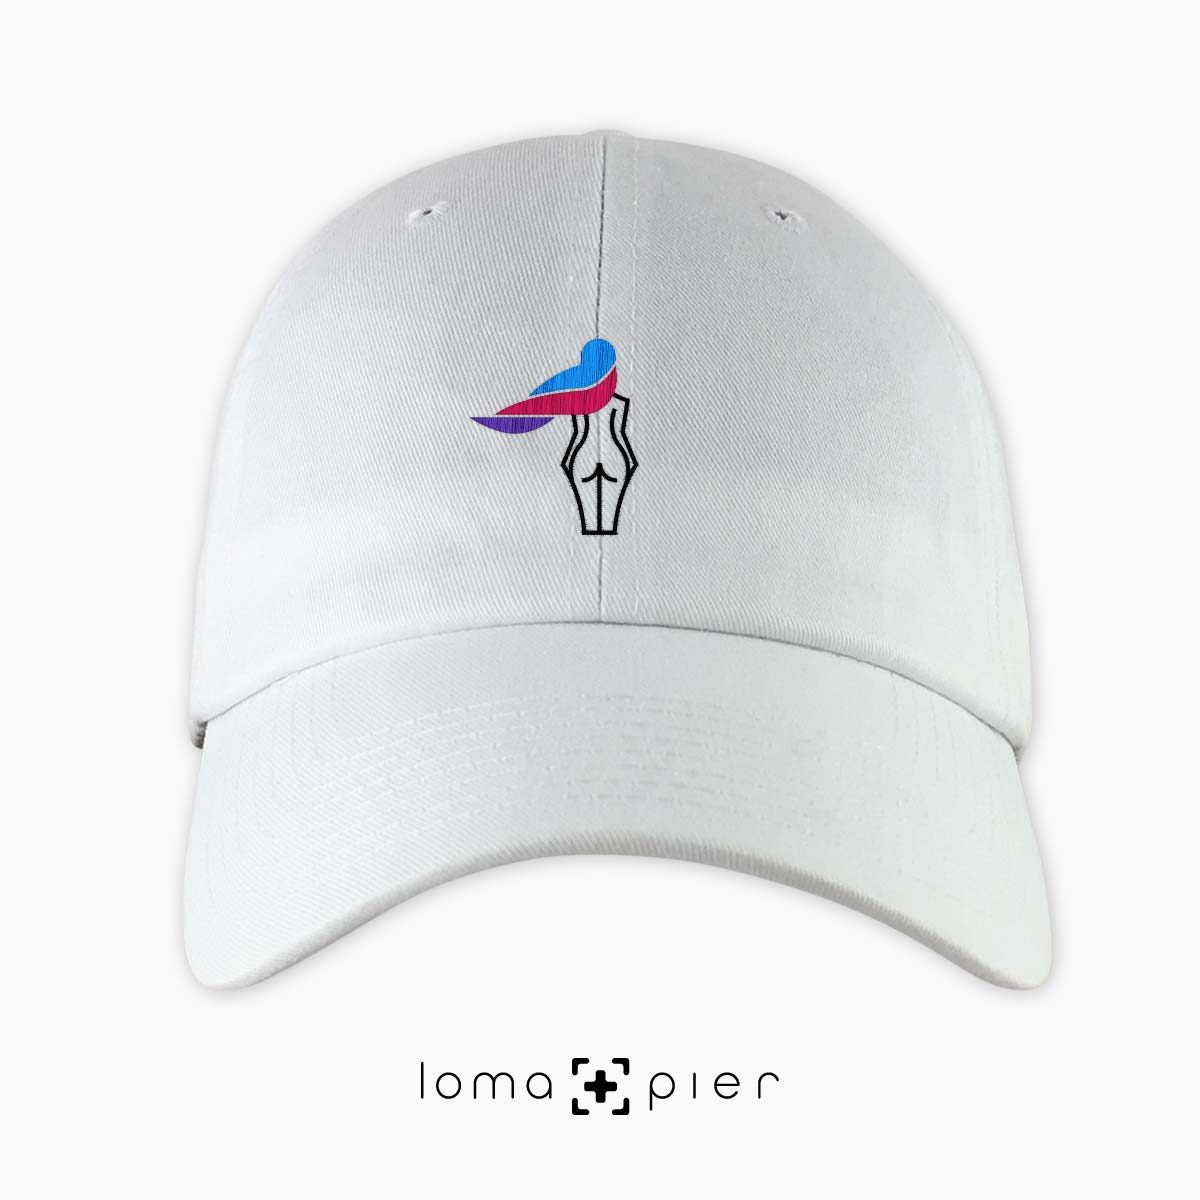 WAVY BEACH icon embroidered on a white unstructured dad hat with multicolored thread by loma+pier hat store made in the USA